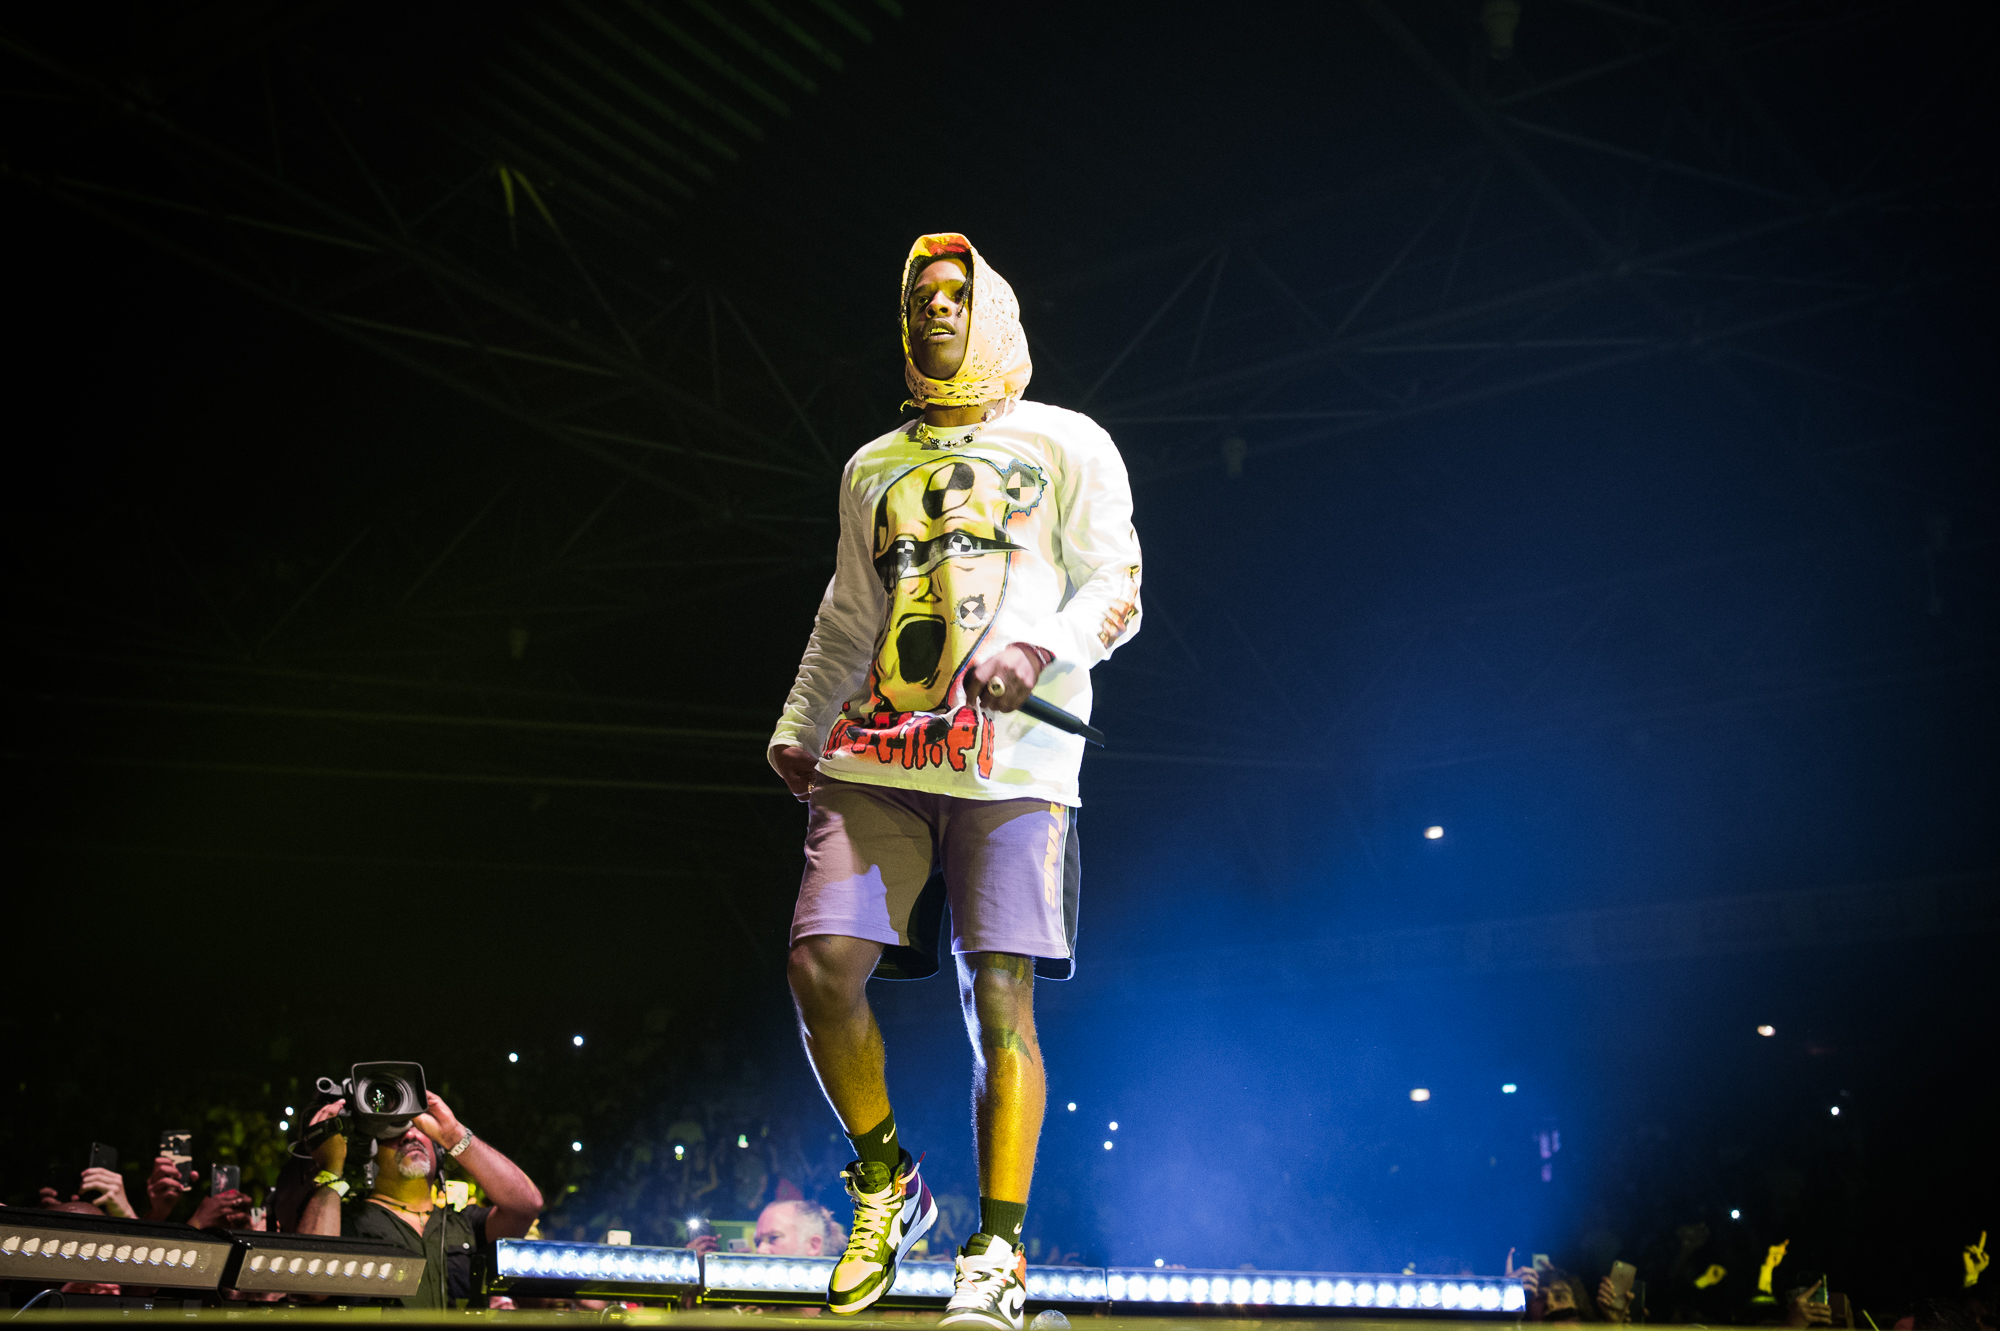 Performer A$AP Rocky onstage, holding a microphone and walking away from the crowd.